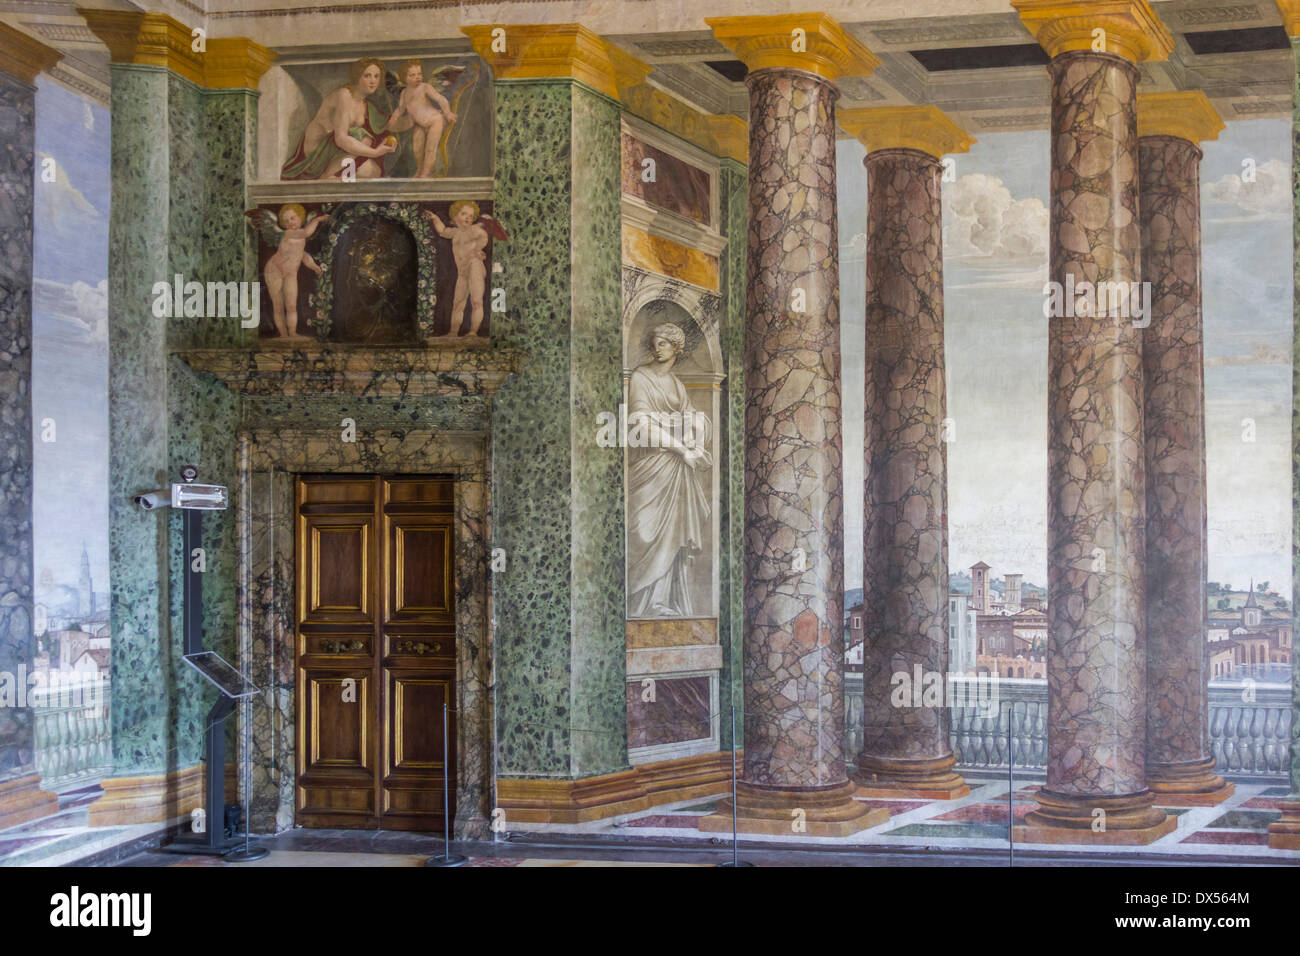 Perspectives' Hall, Villa Farnesina, Rome, Lazio, Italy Stock Photo